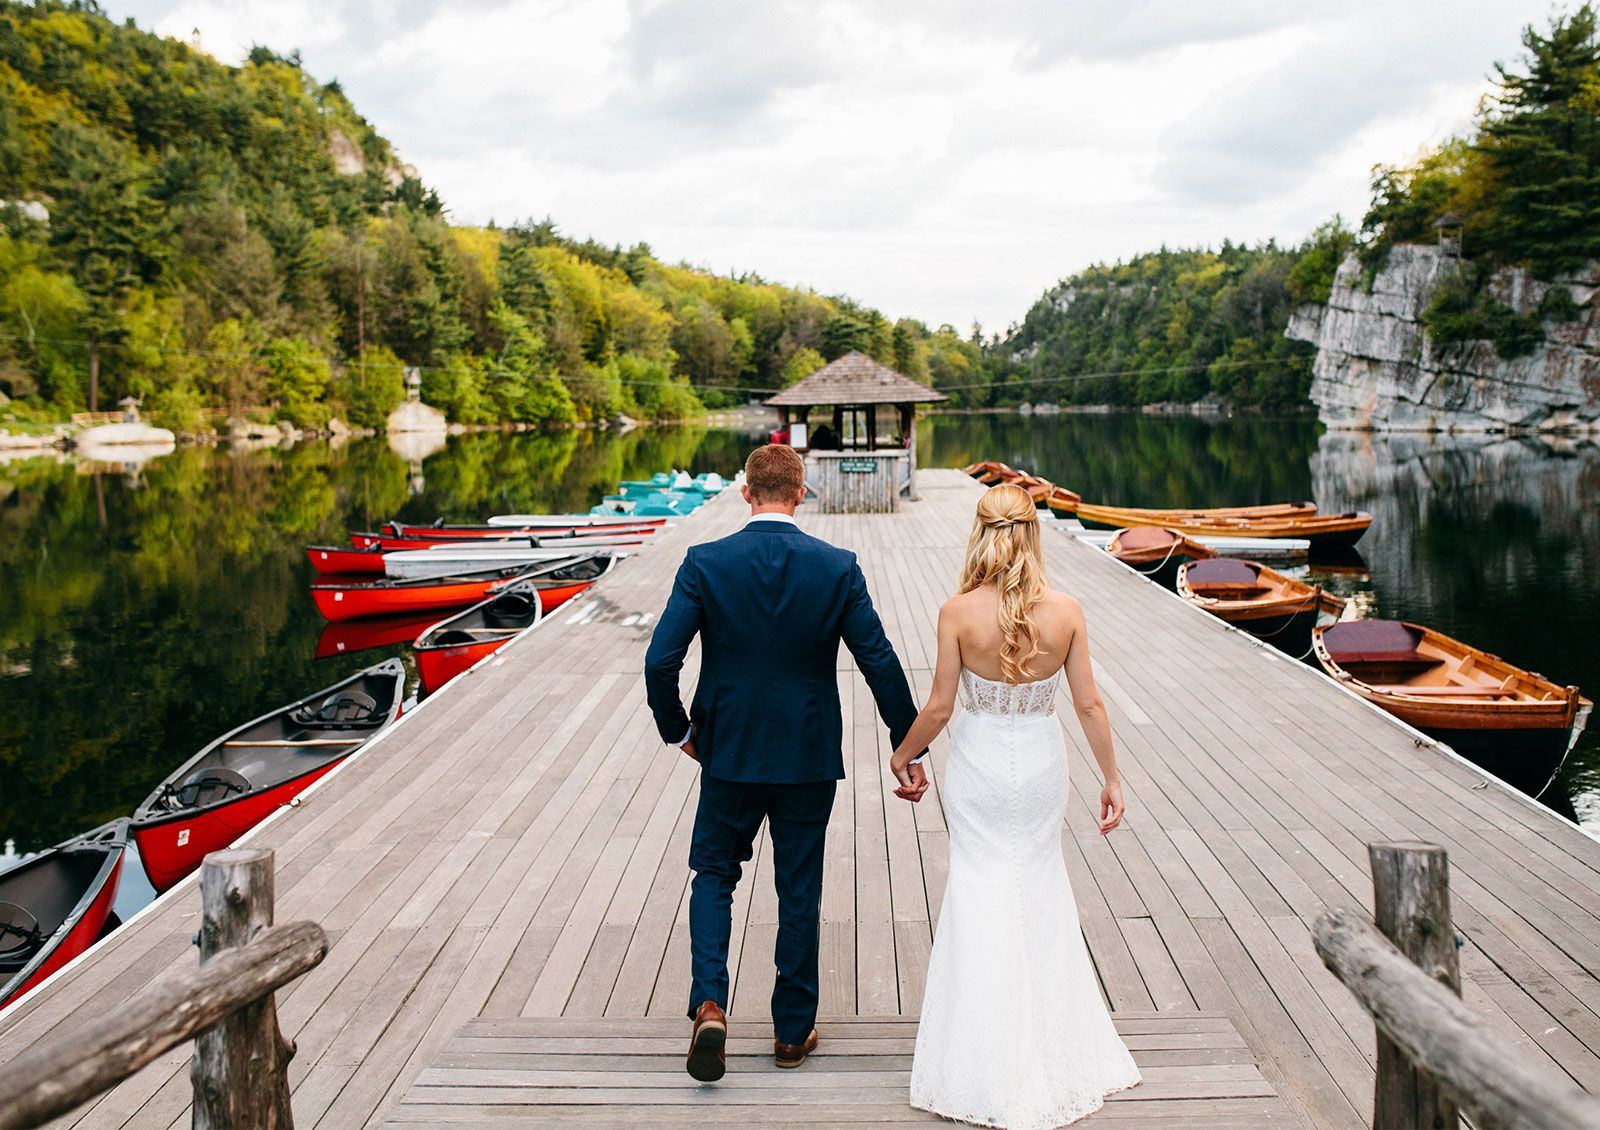 Mohonk Mountain House New Paltz Ny Stephanie Andrew S Wedding Weddings At Pinterest And